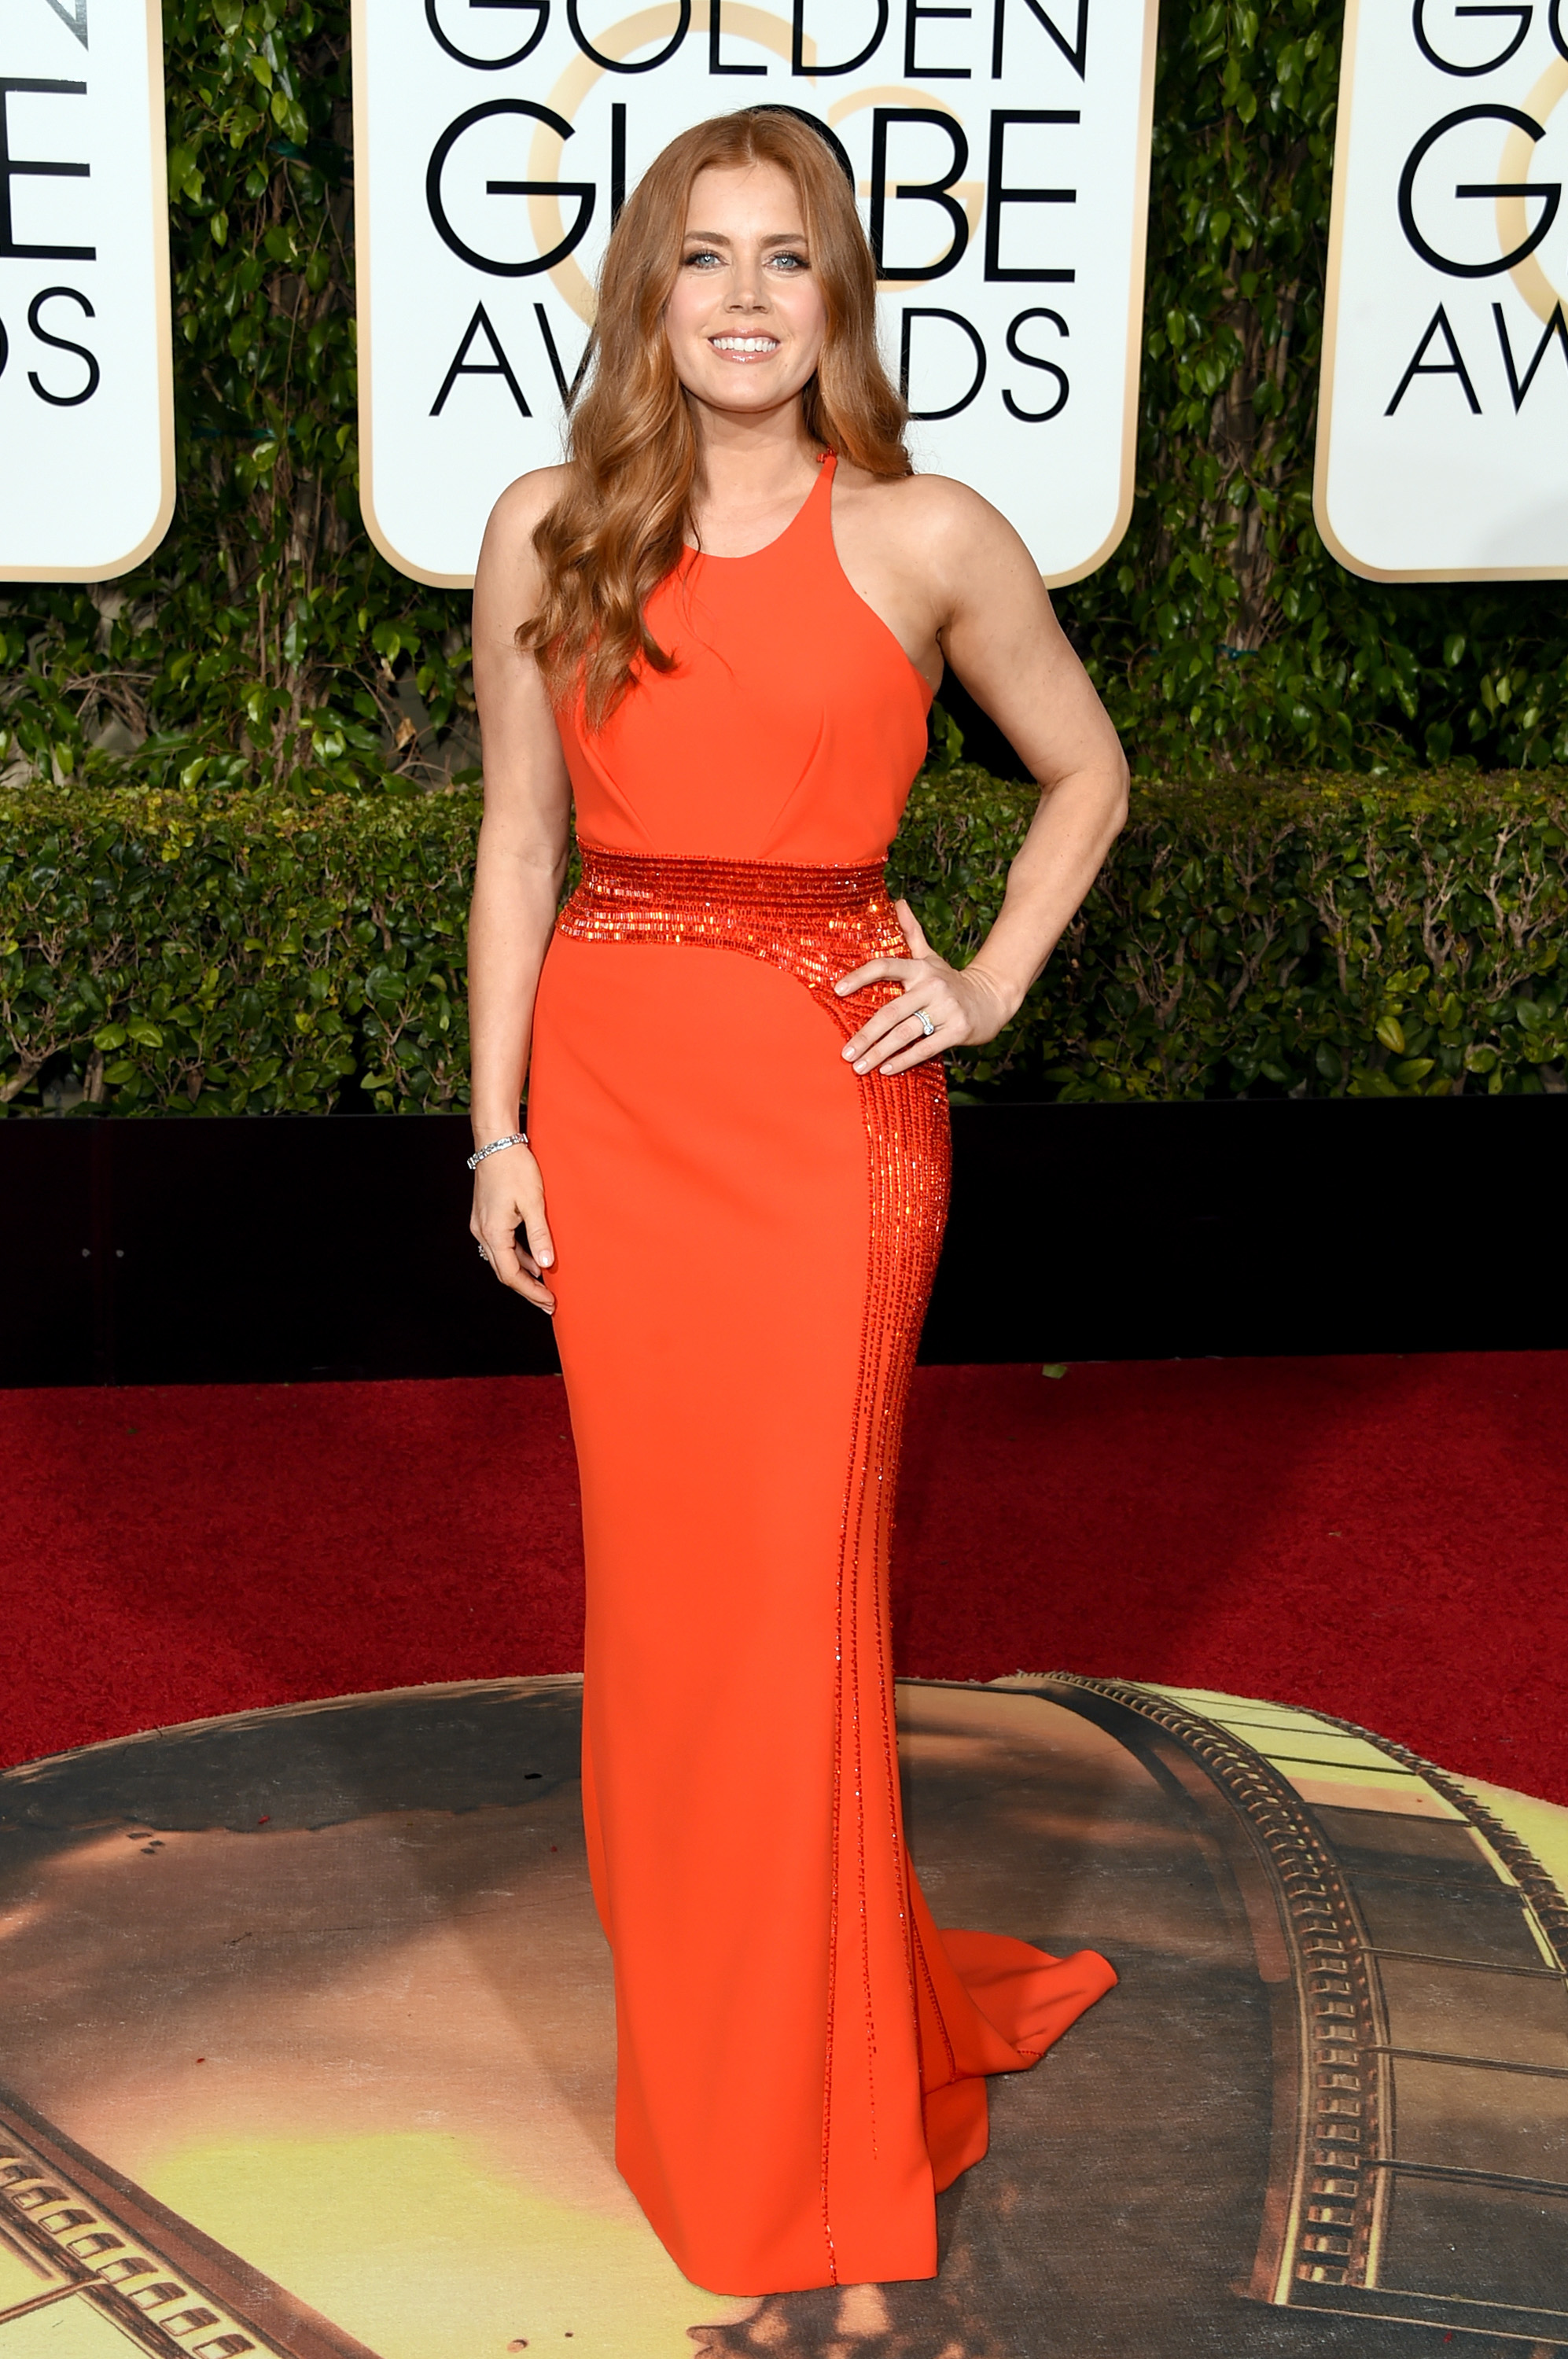 Amy Adams arrives to the 73rd Annual Golden Globe Awards on Jan. 10, 2016 in Beverly Hills.